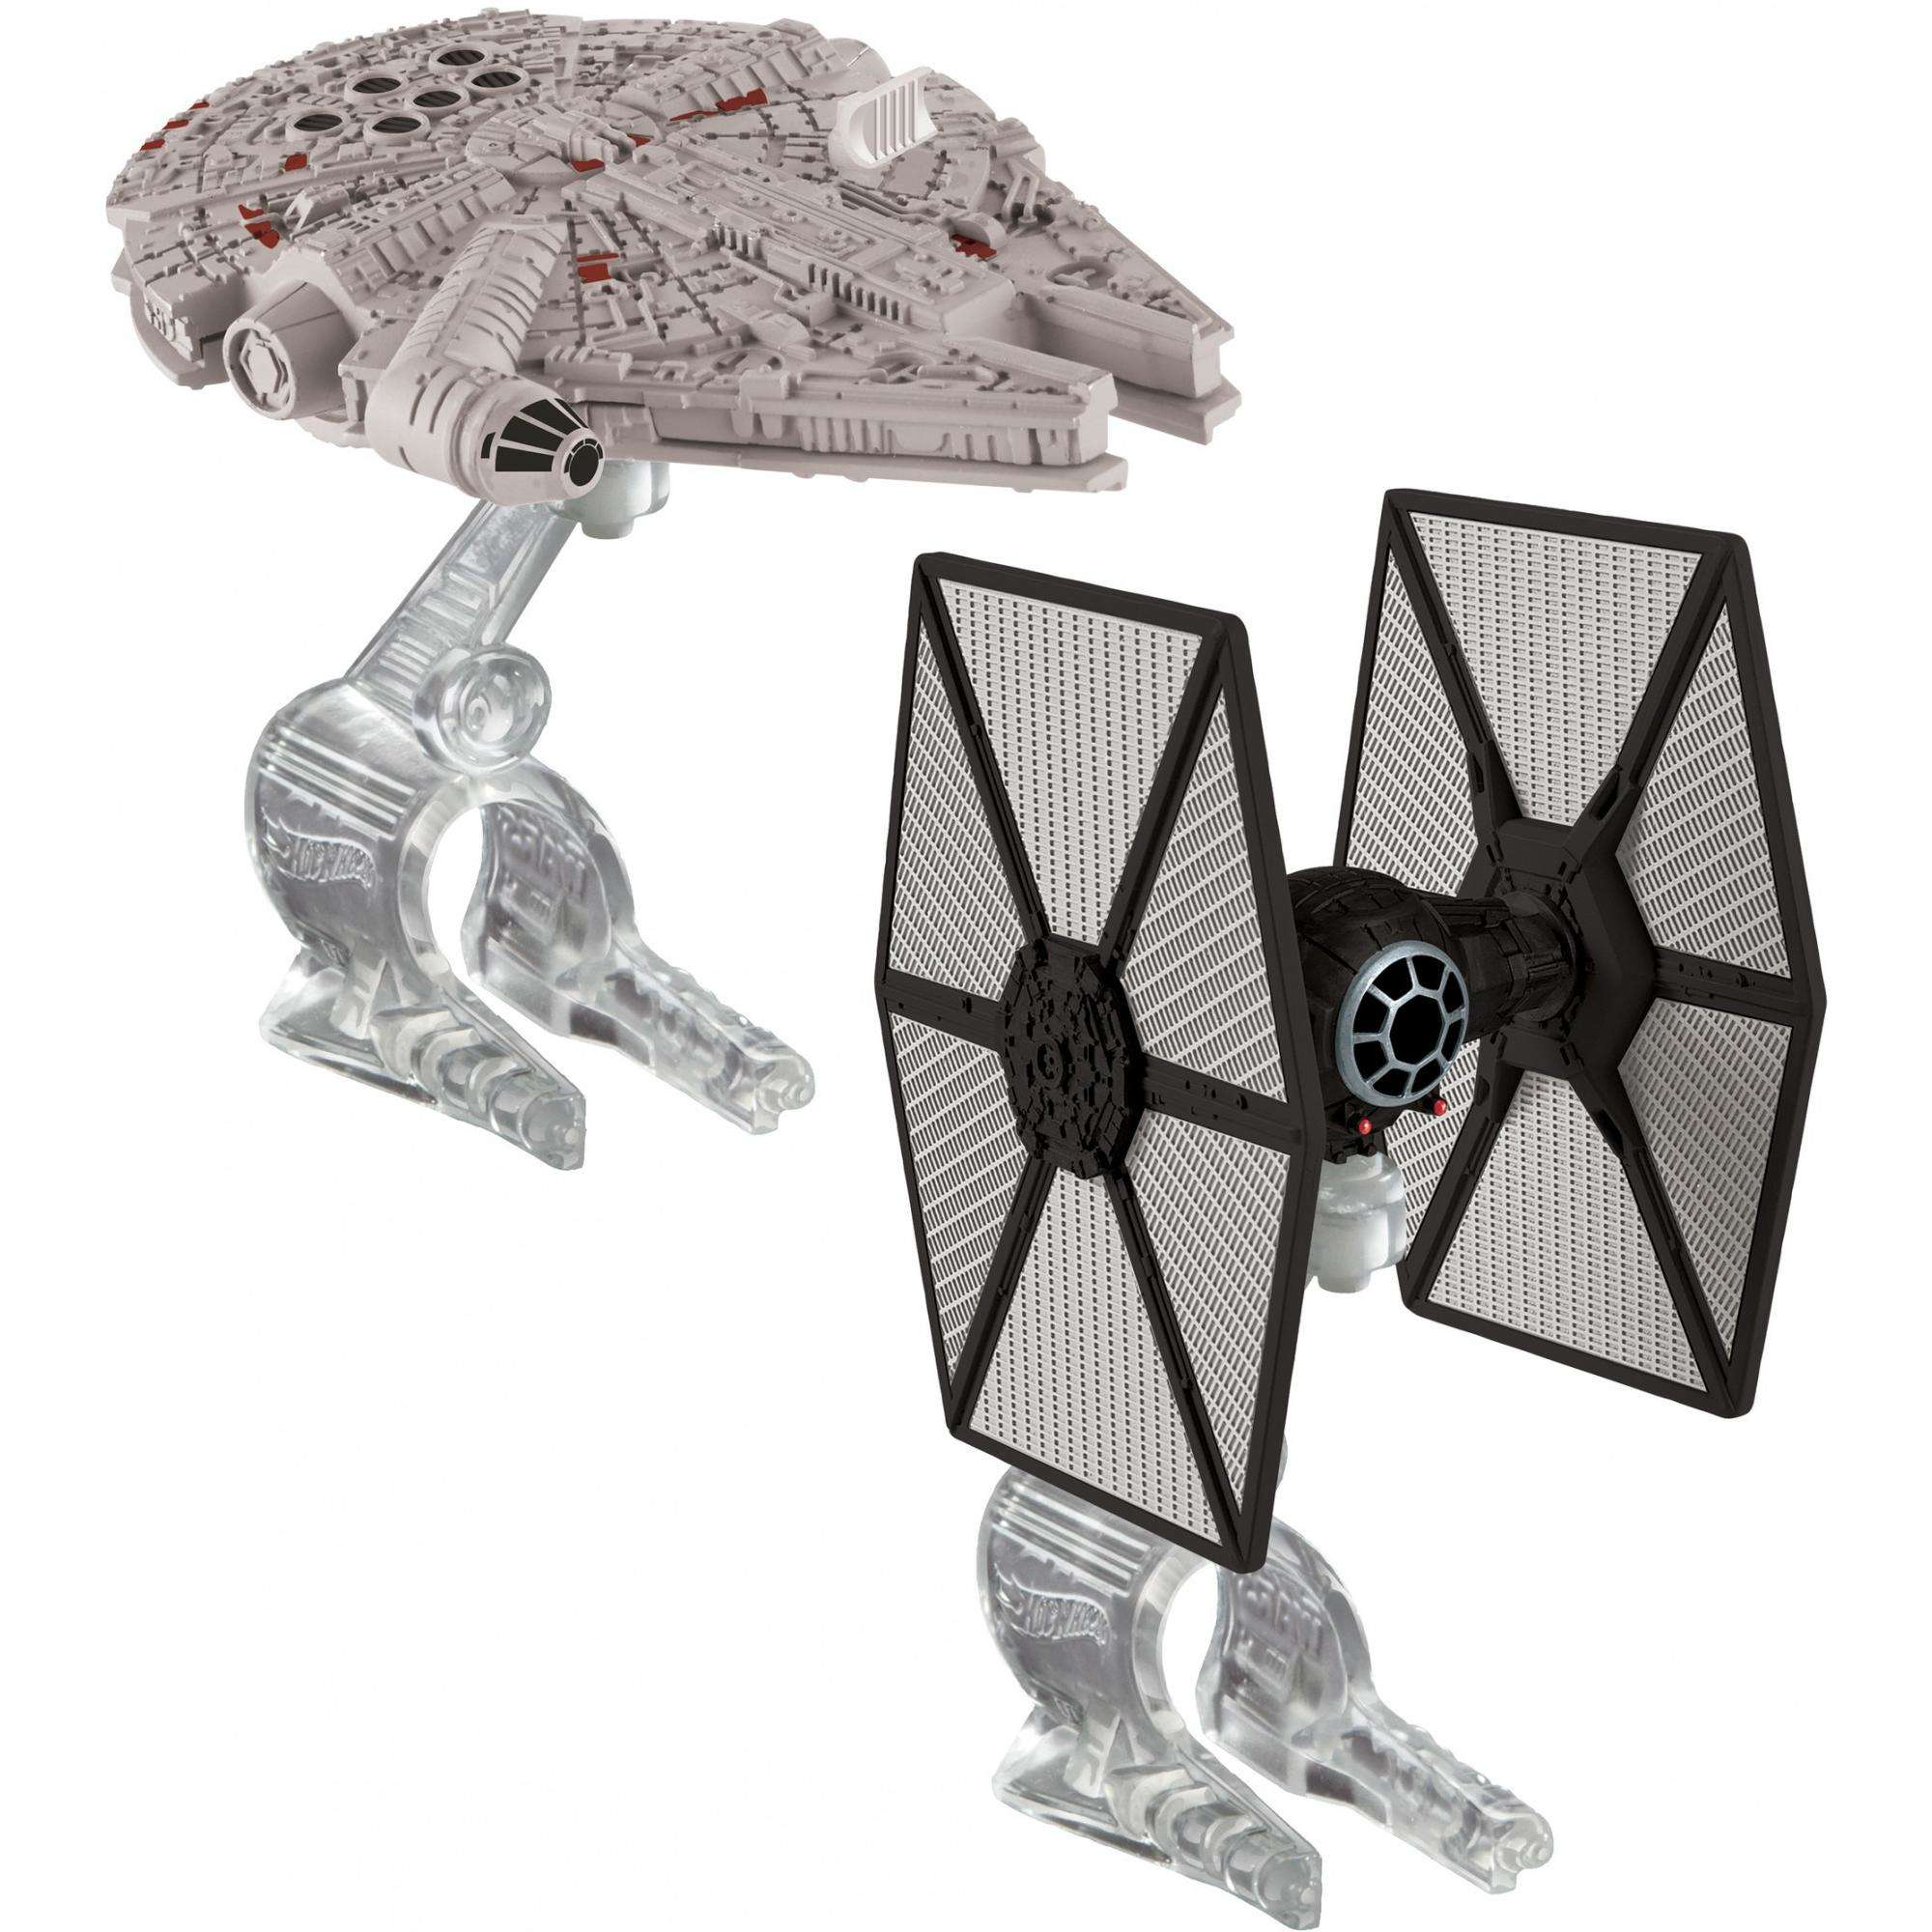 Hot Wheels Star Wars First Order Tie Fighter vs. Millennium Falcon